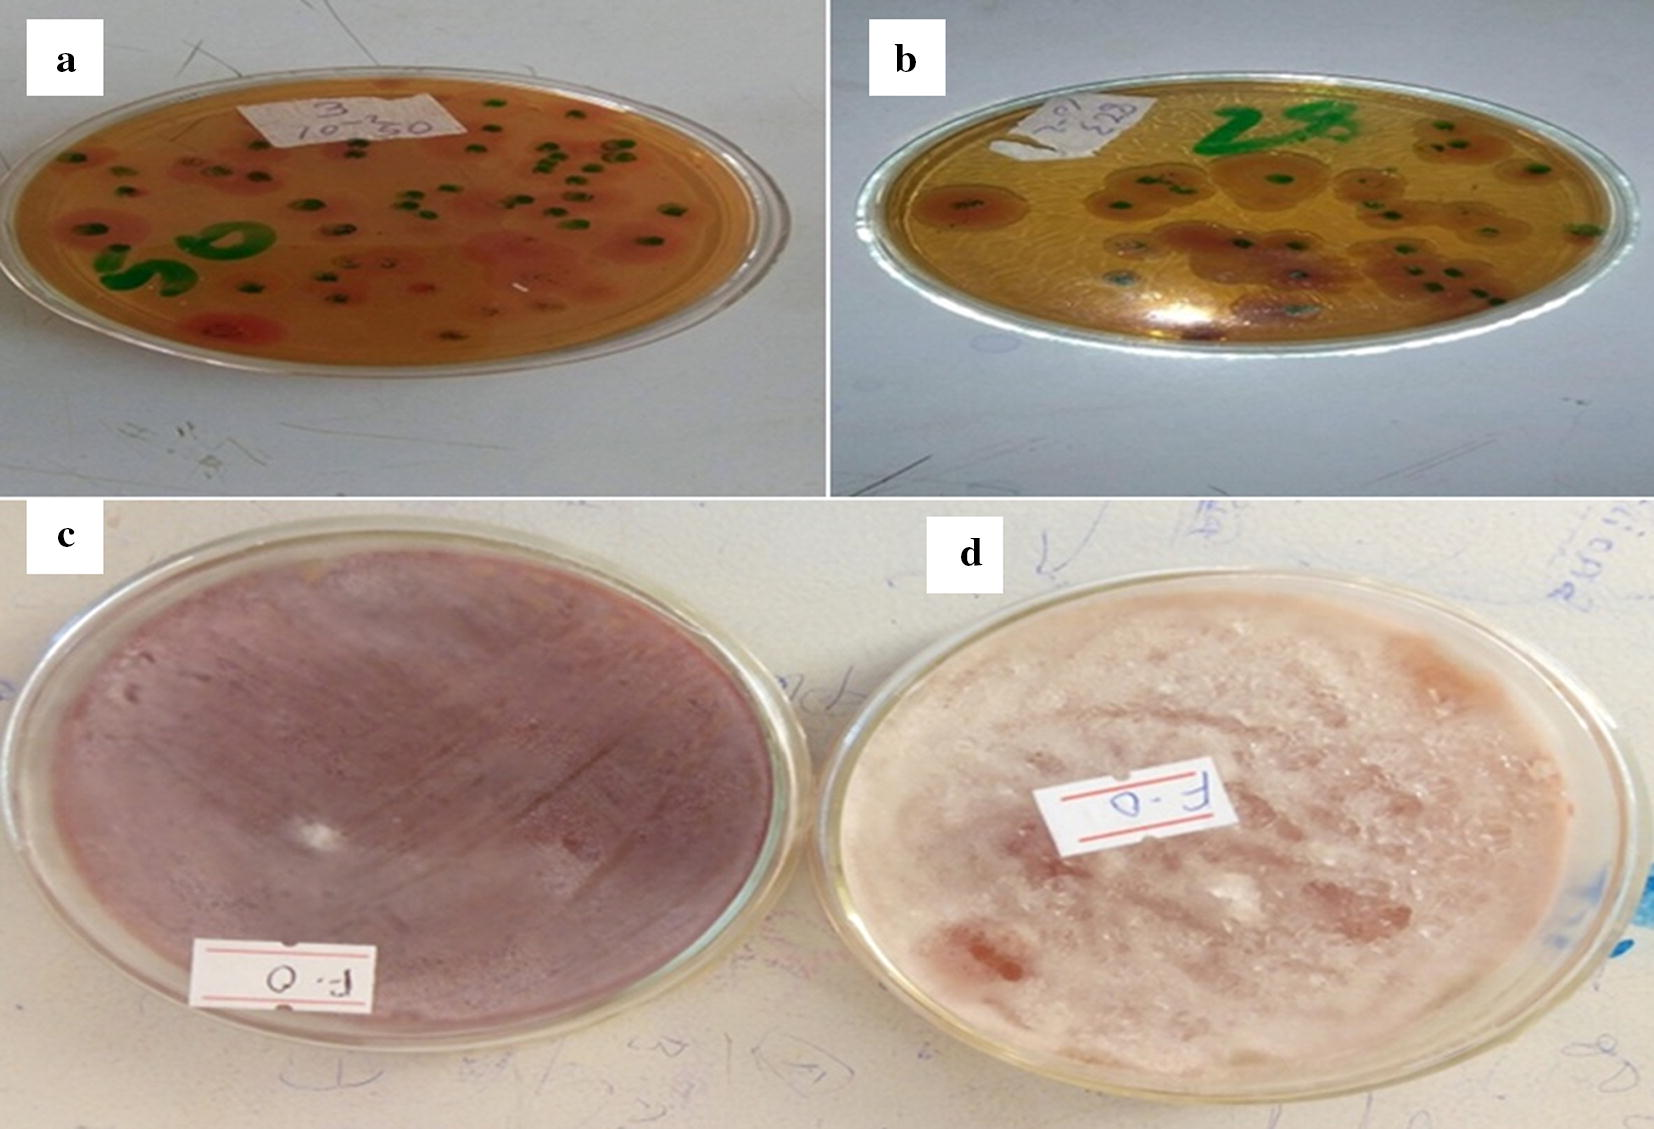 Copper doped zeolite composite for antimicrobial activity